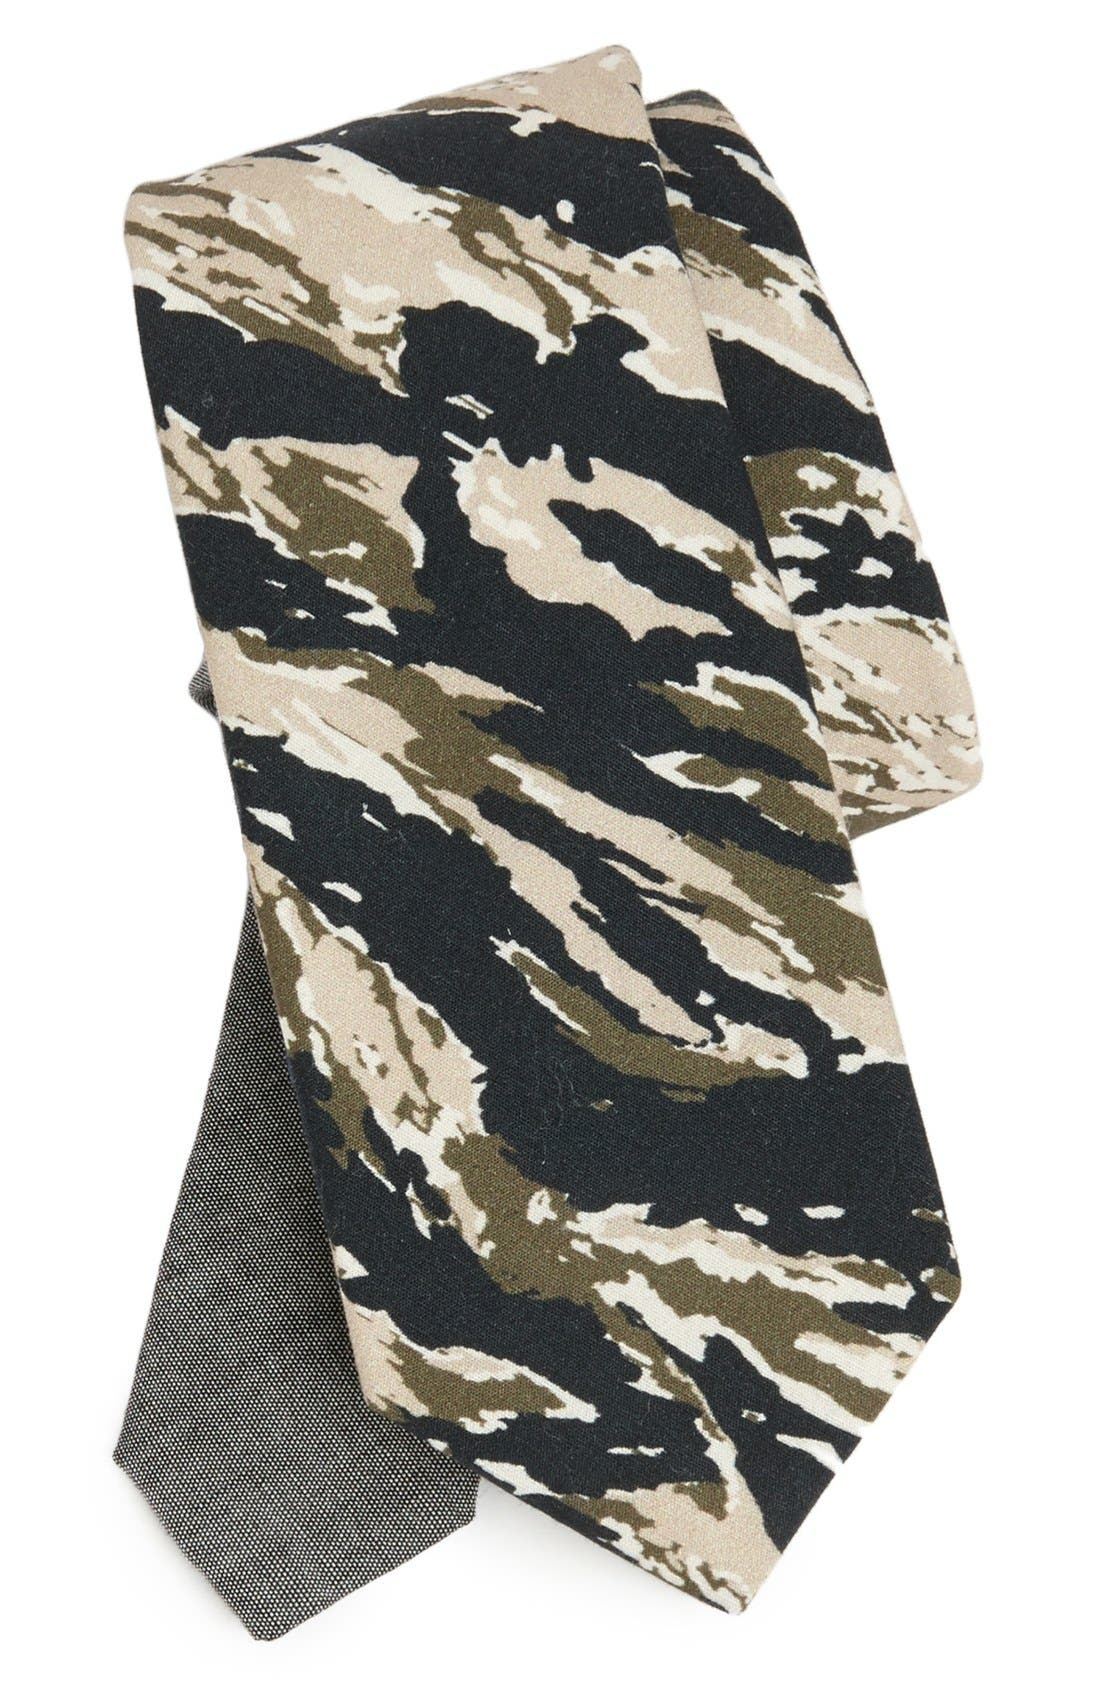 Alternate Image 1 Selected - EDIT by The Tie Bar Camo Cotton Tie (Nordstrom Exclusive)